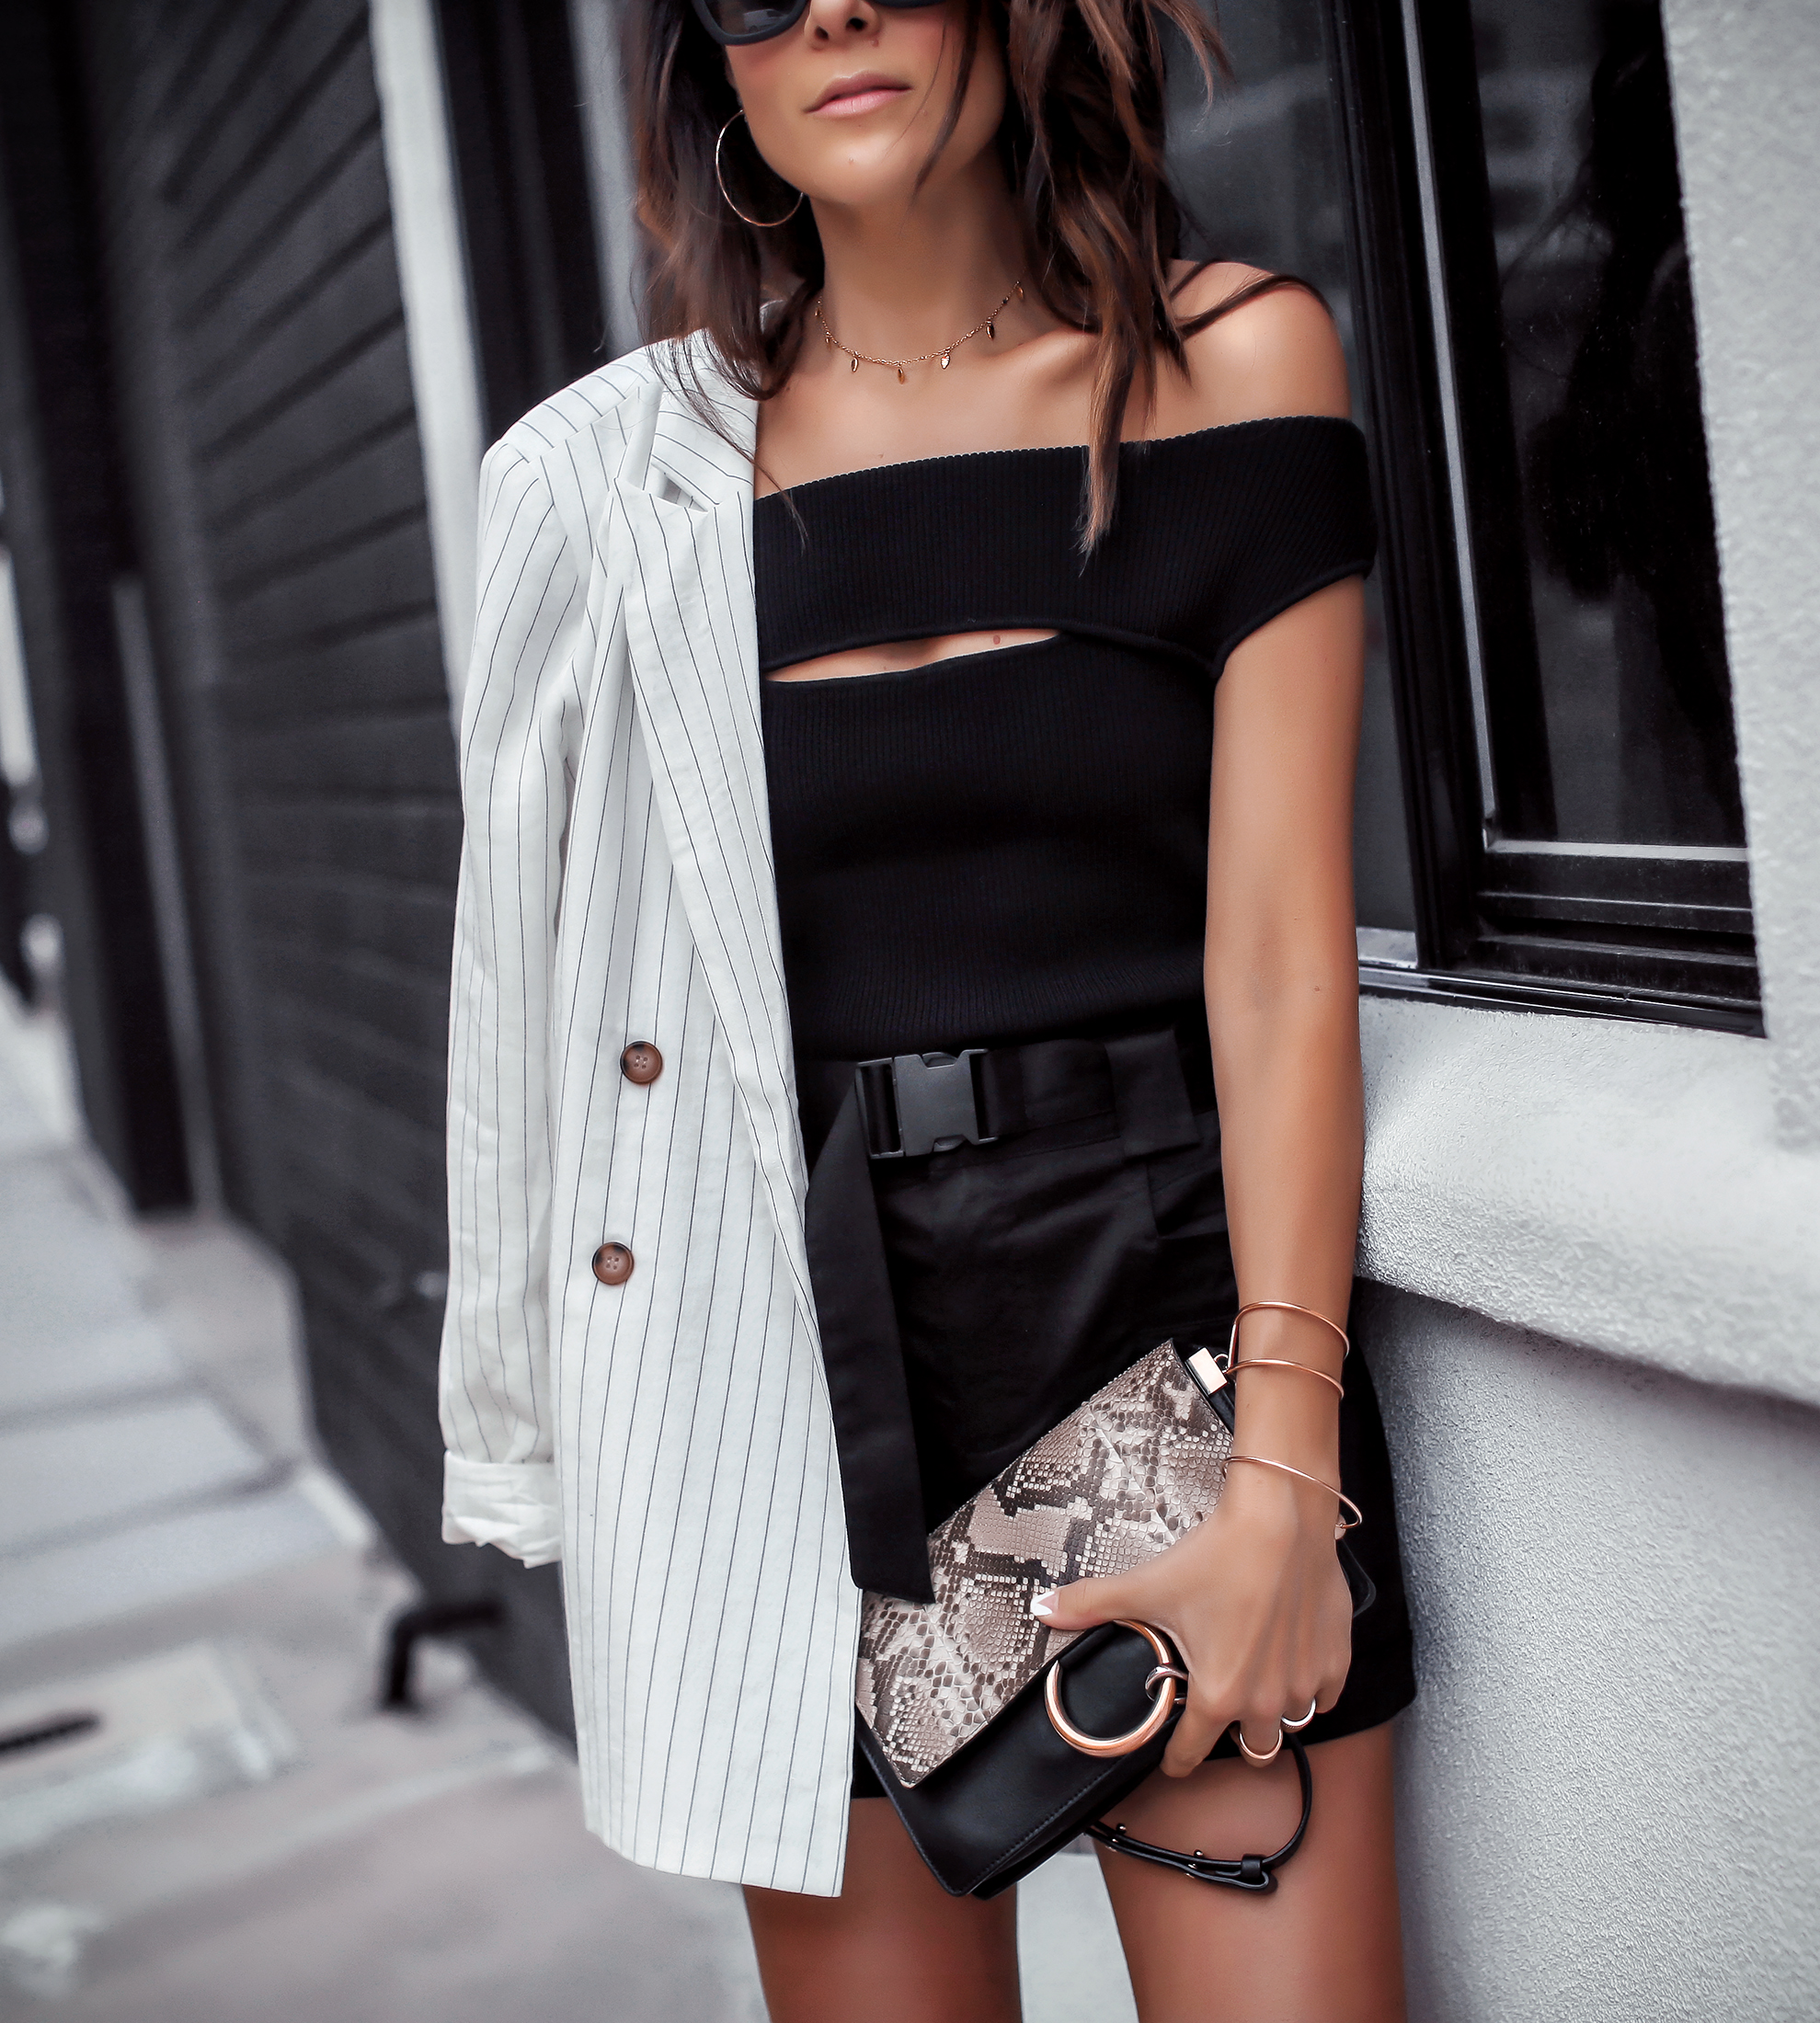 Brunette Woman Wearing Express Olivia Culpo Collection Chloe Nile Bag